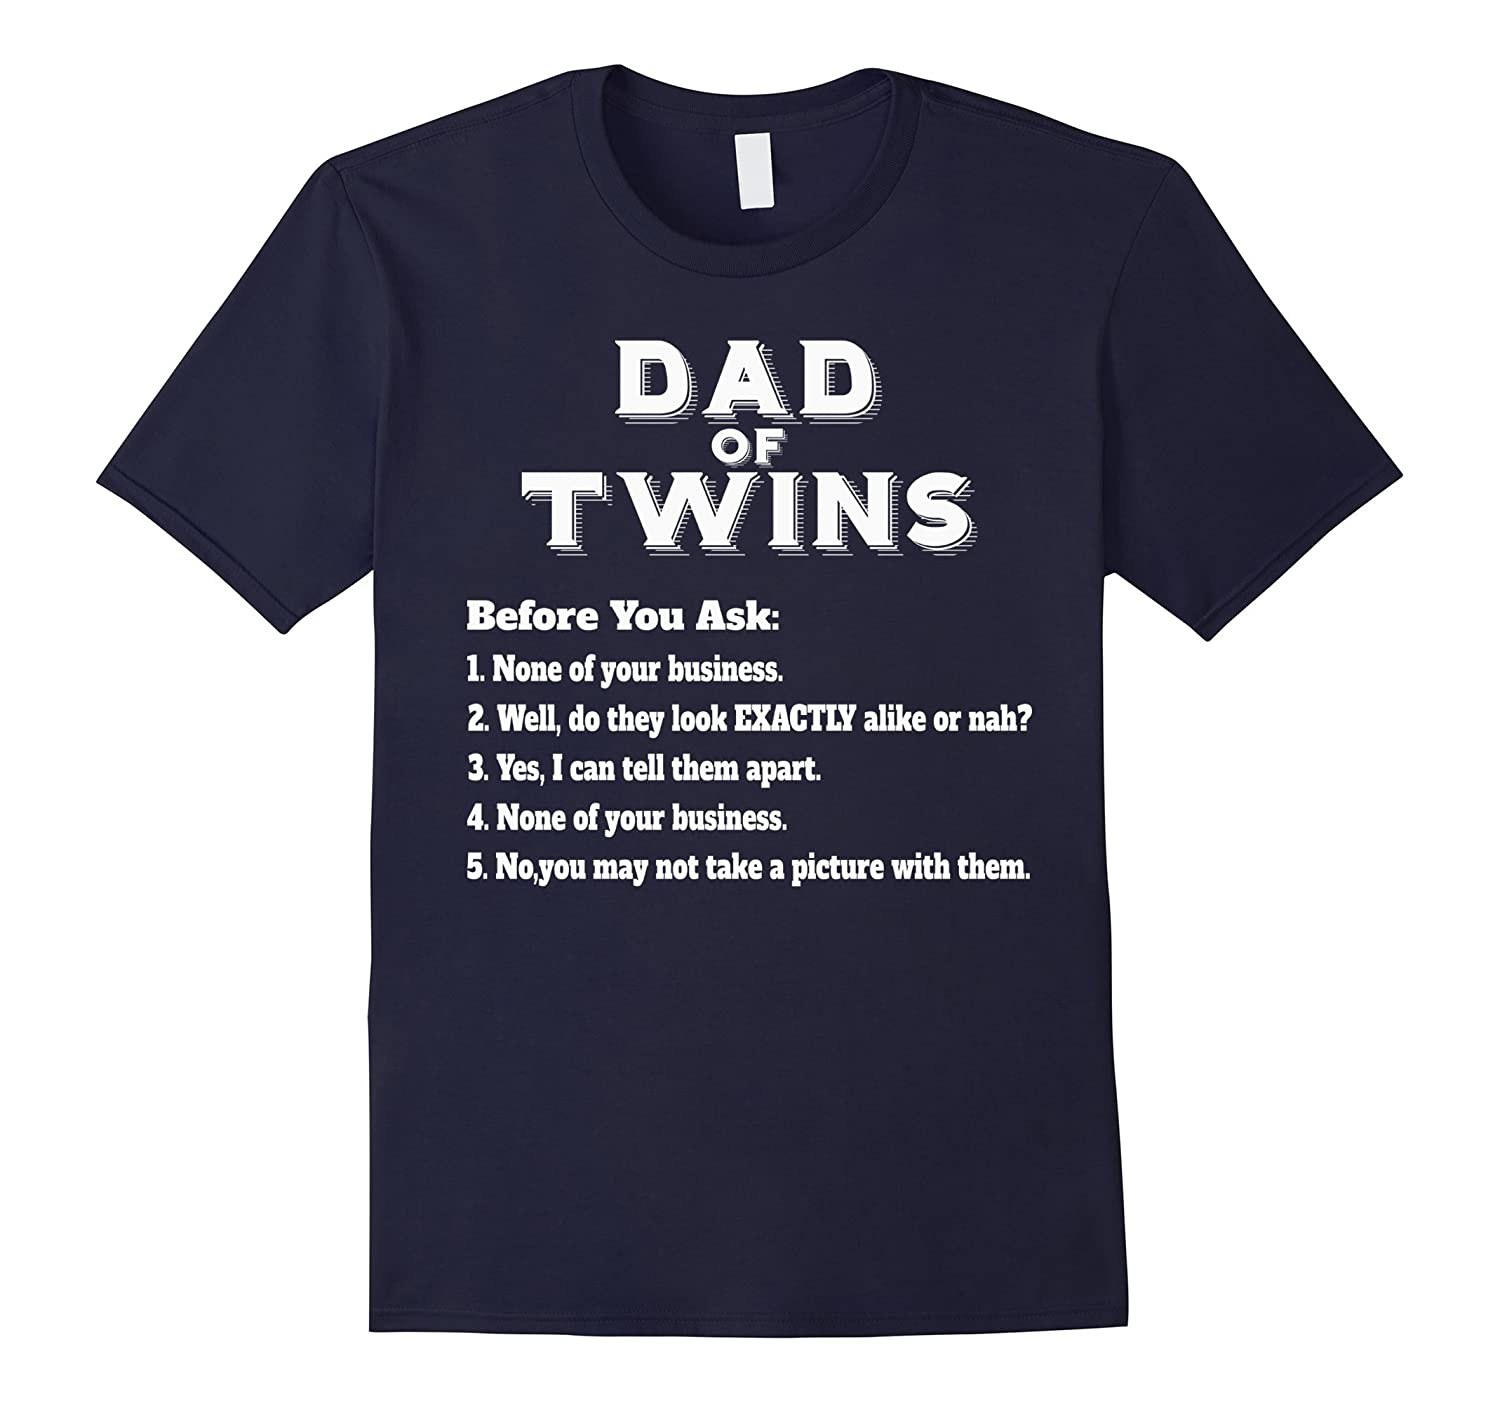 f6c596fe Mens Funny Twins Dad T-shirt for Fathers Day Common Questions ...